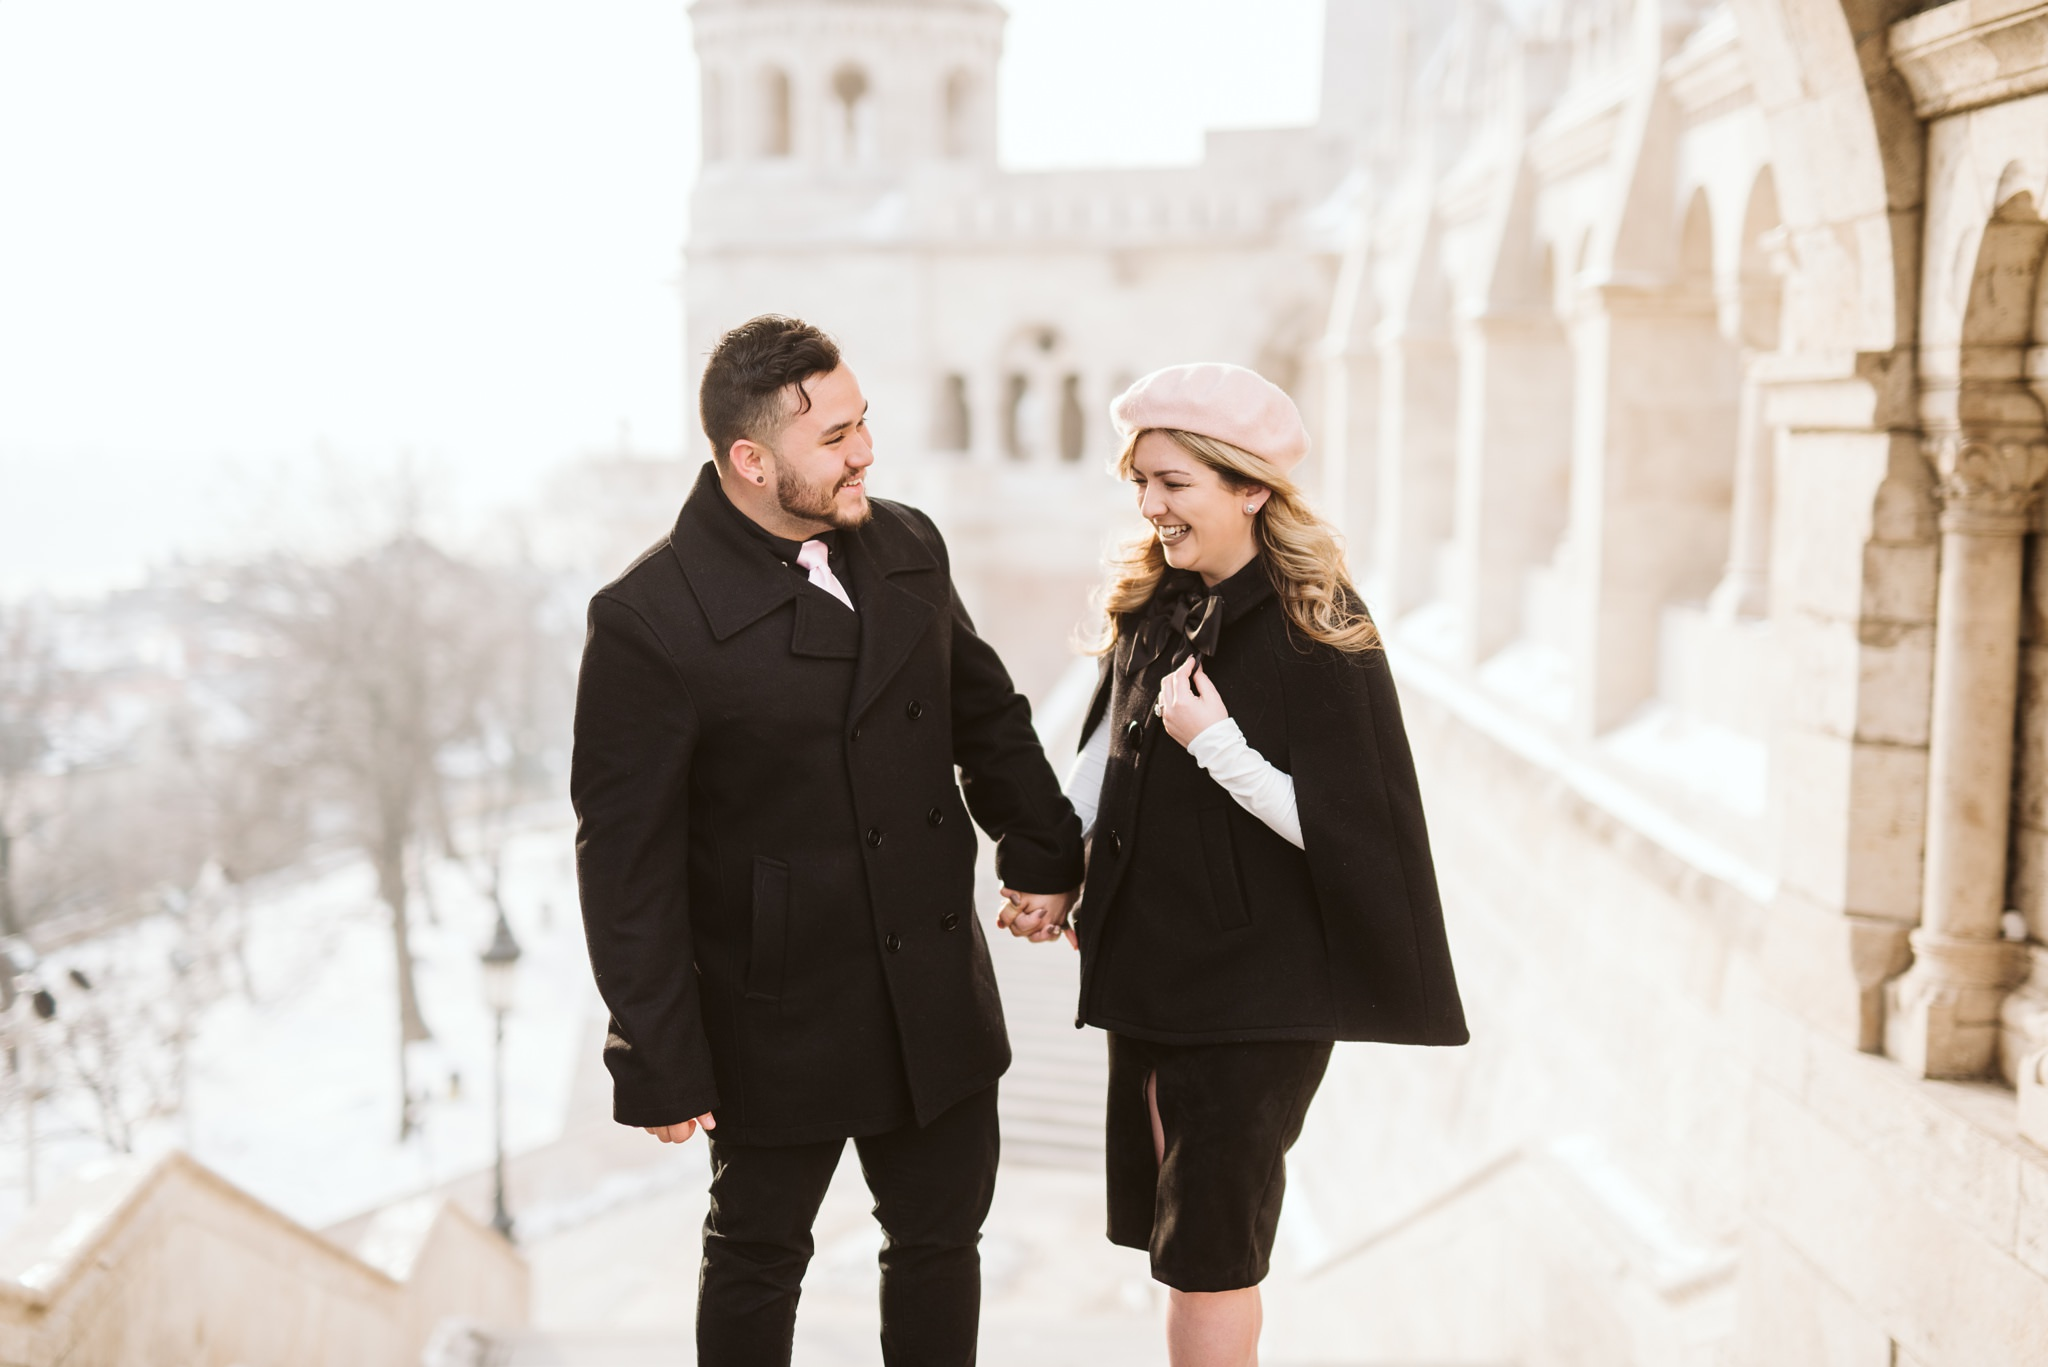 25 early morning engagement in budapest